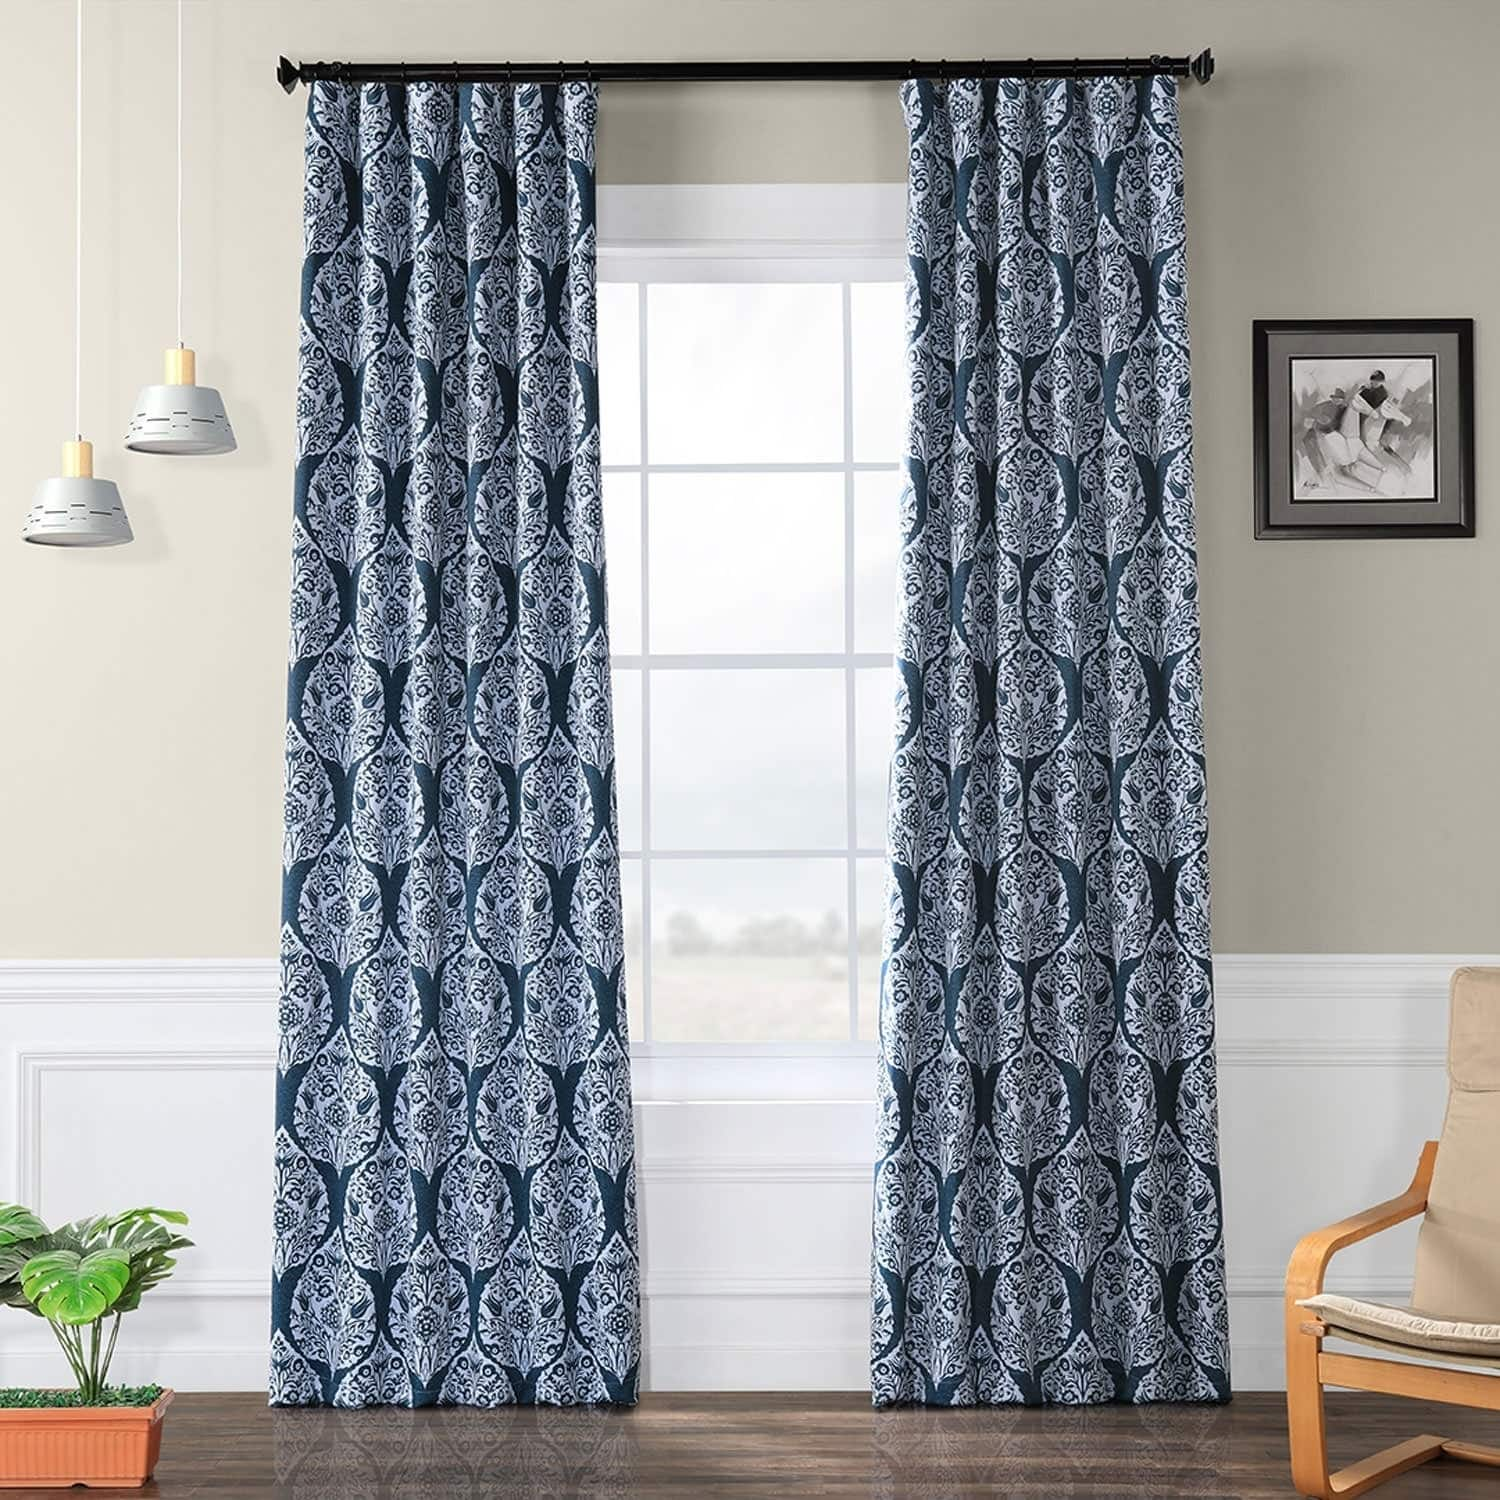 Navy Blue and White Patterned Curtains